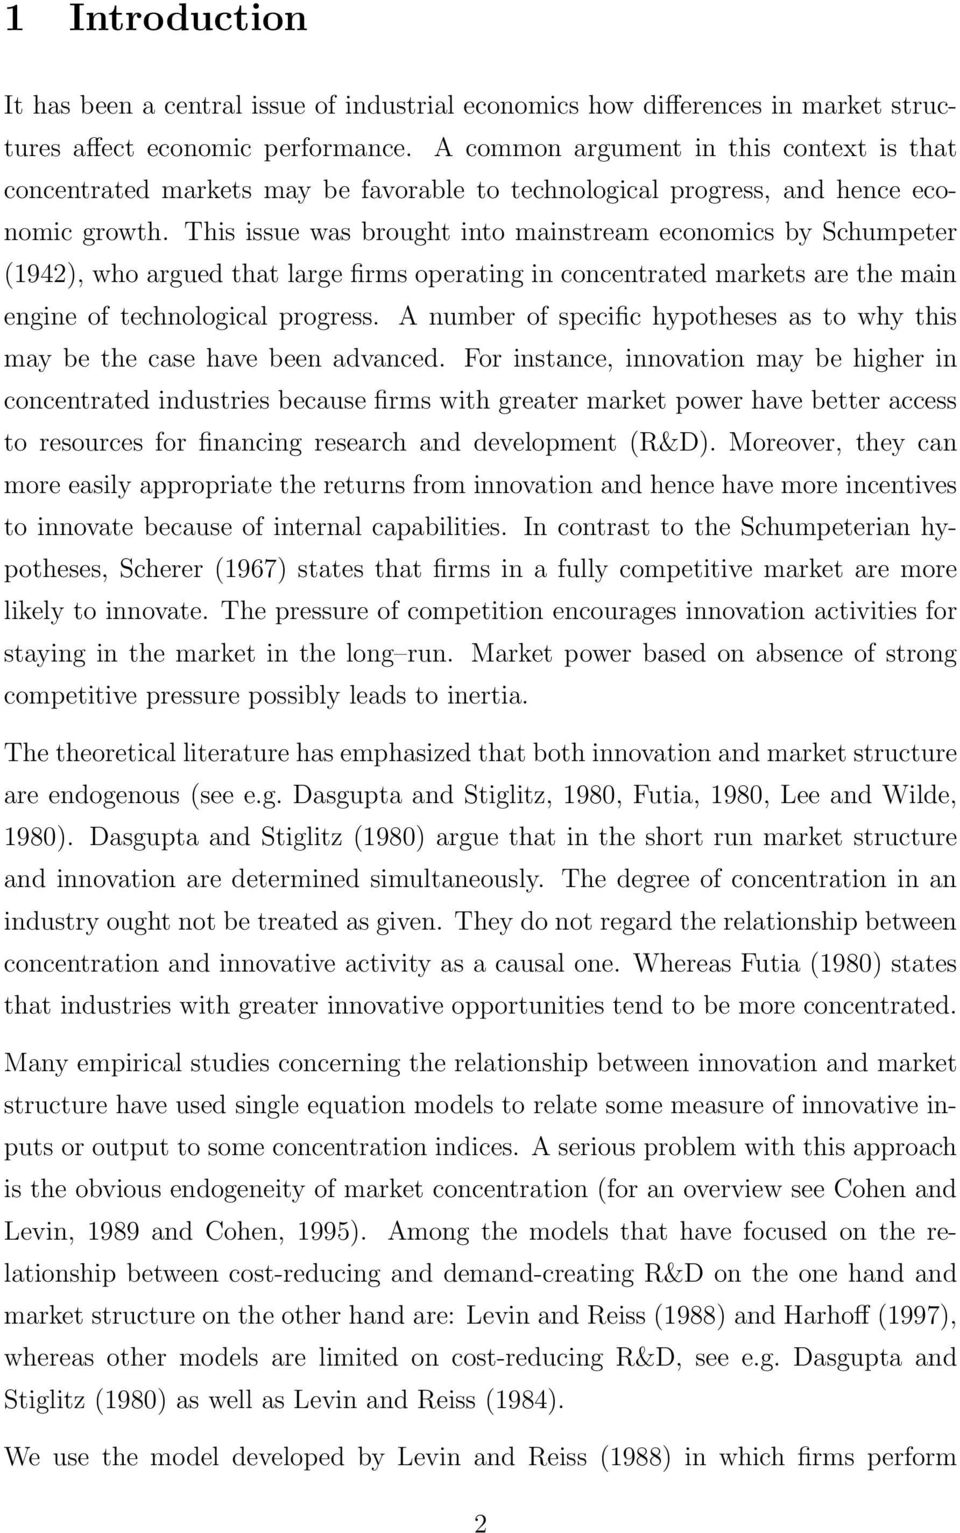 This issue was brought into mainstream economics by Schumpeter (1942), who argued that large firms operating in concentrated markets are the main engine of technological progress.